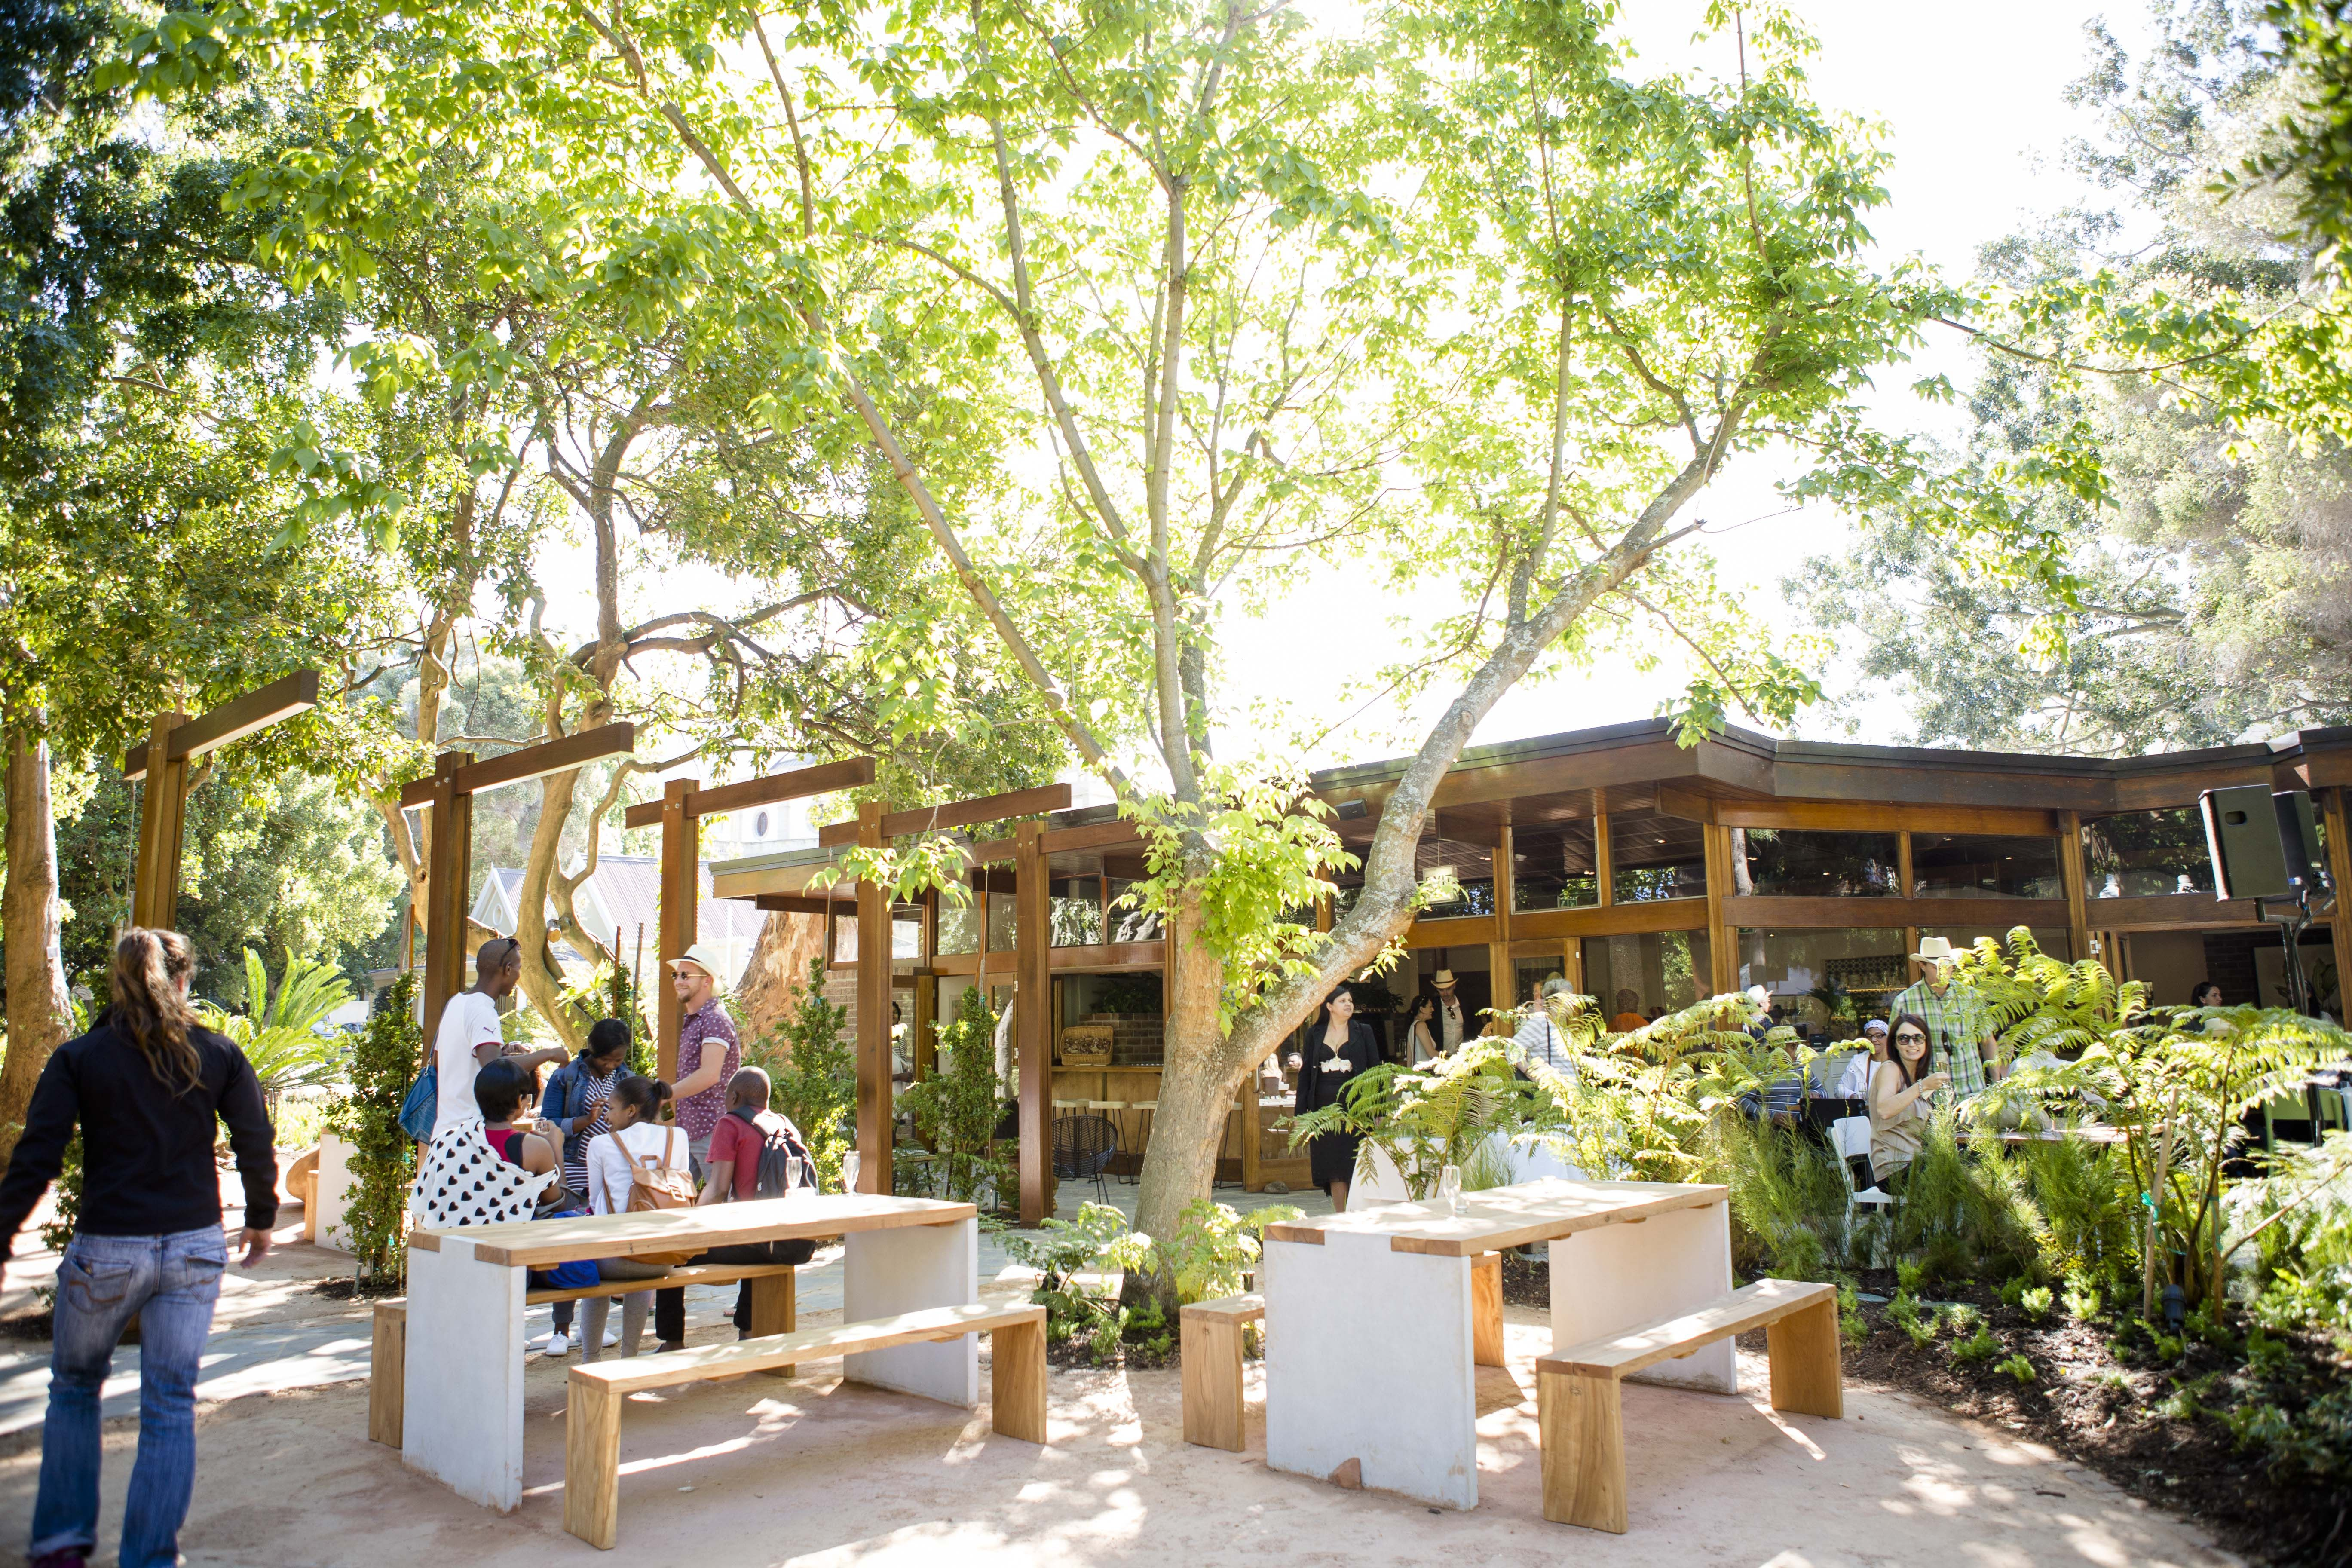 Company Gardens, Cape Town, South Africa. Brunch Or Lunch For Adults U0026  Hours Of Fun For Kids At The Company Gardens Restaurant.